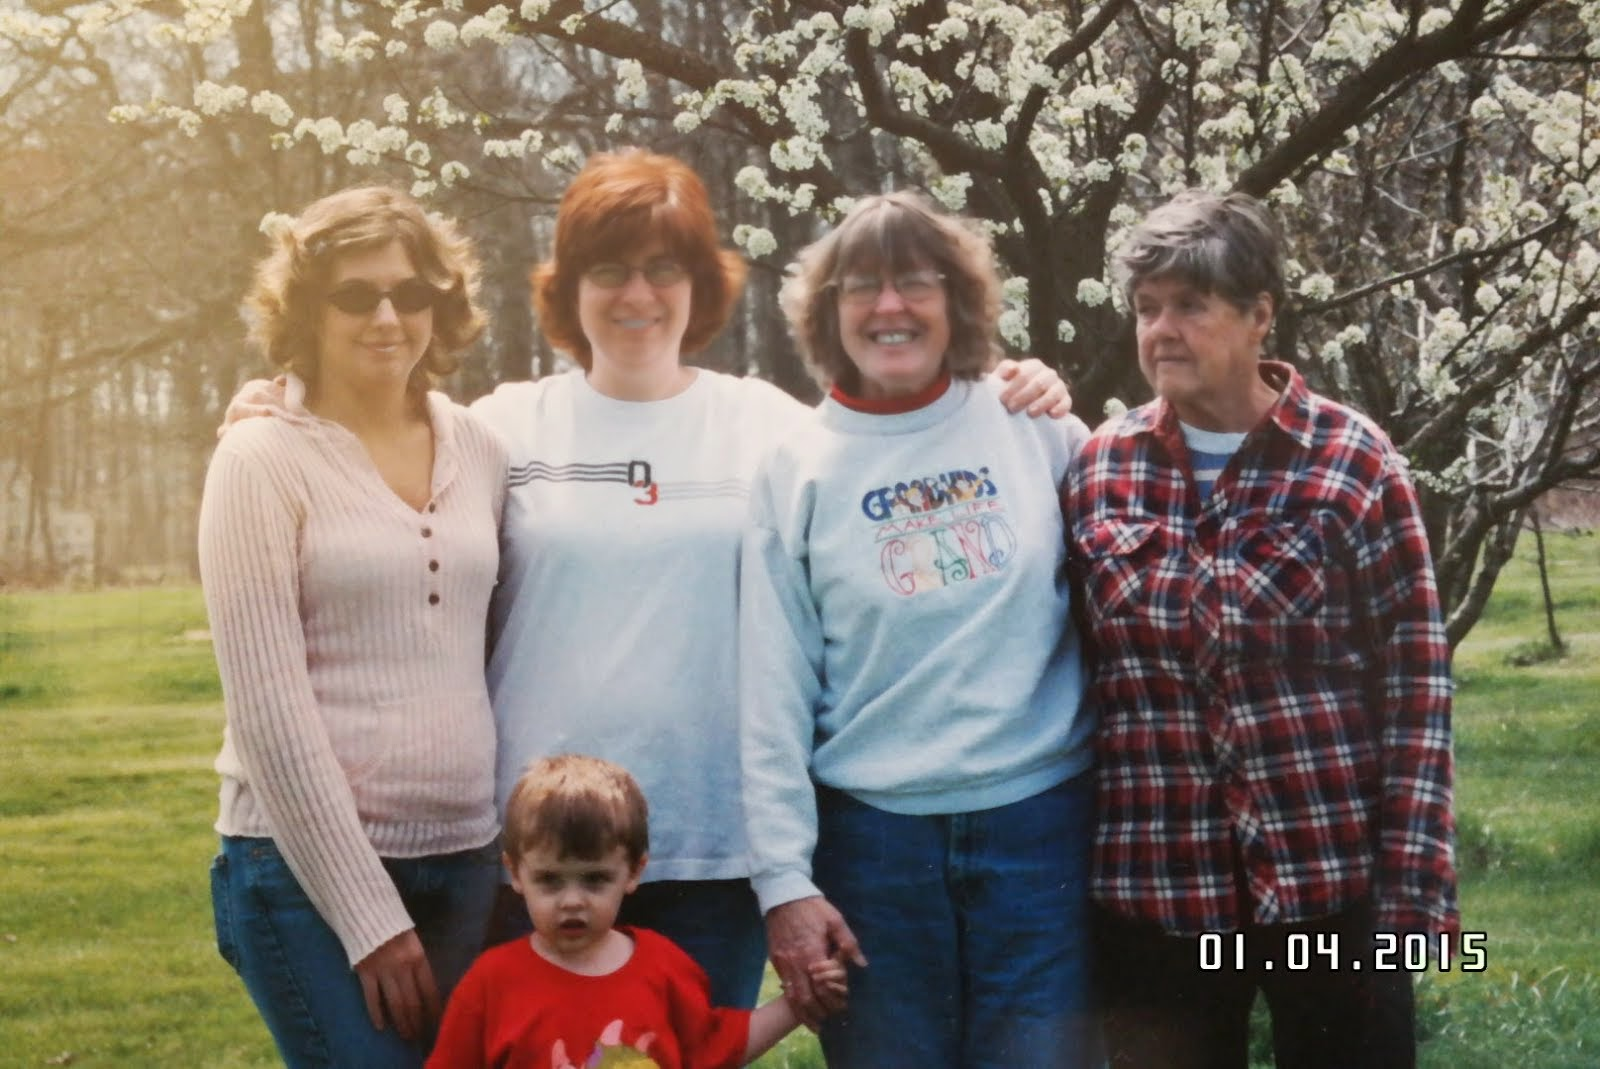 5 Generations - Aunt Dottie, Mom, Me, Jackie, and William